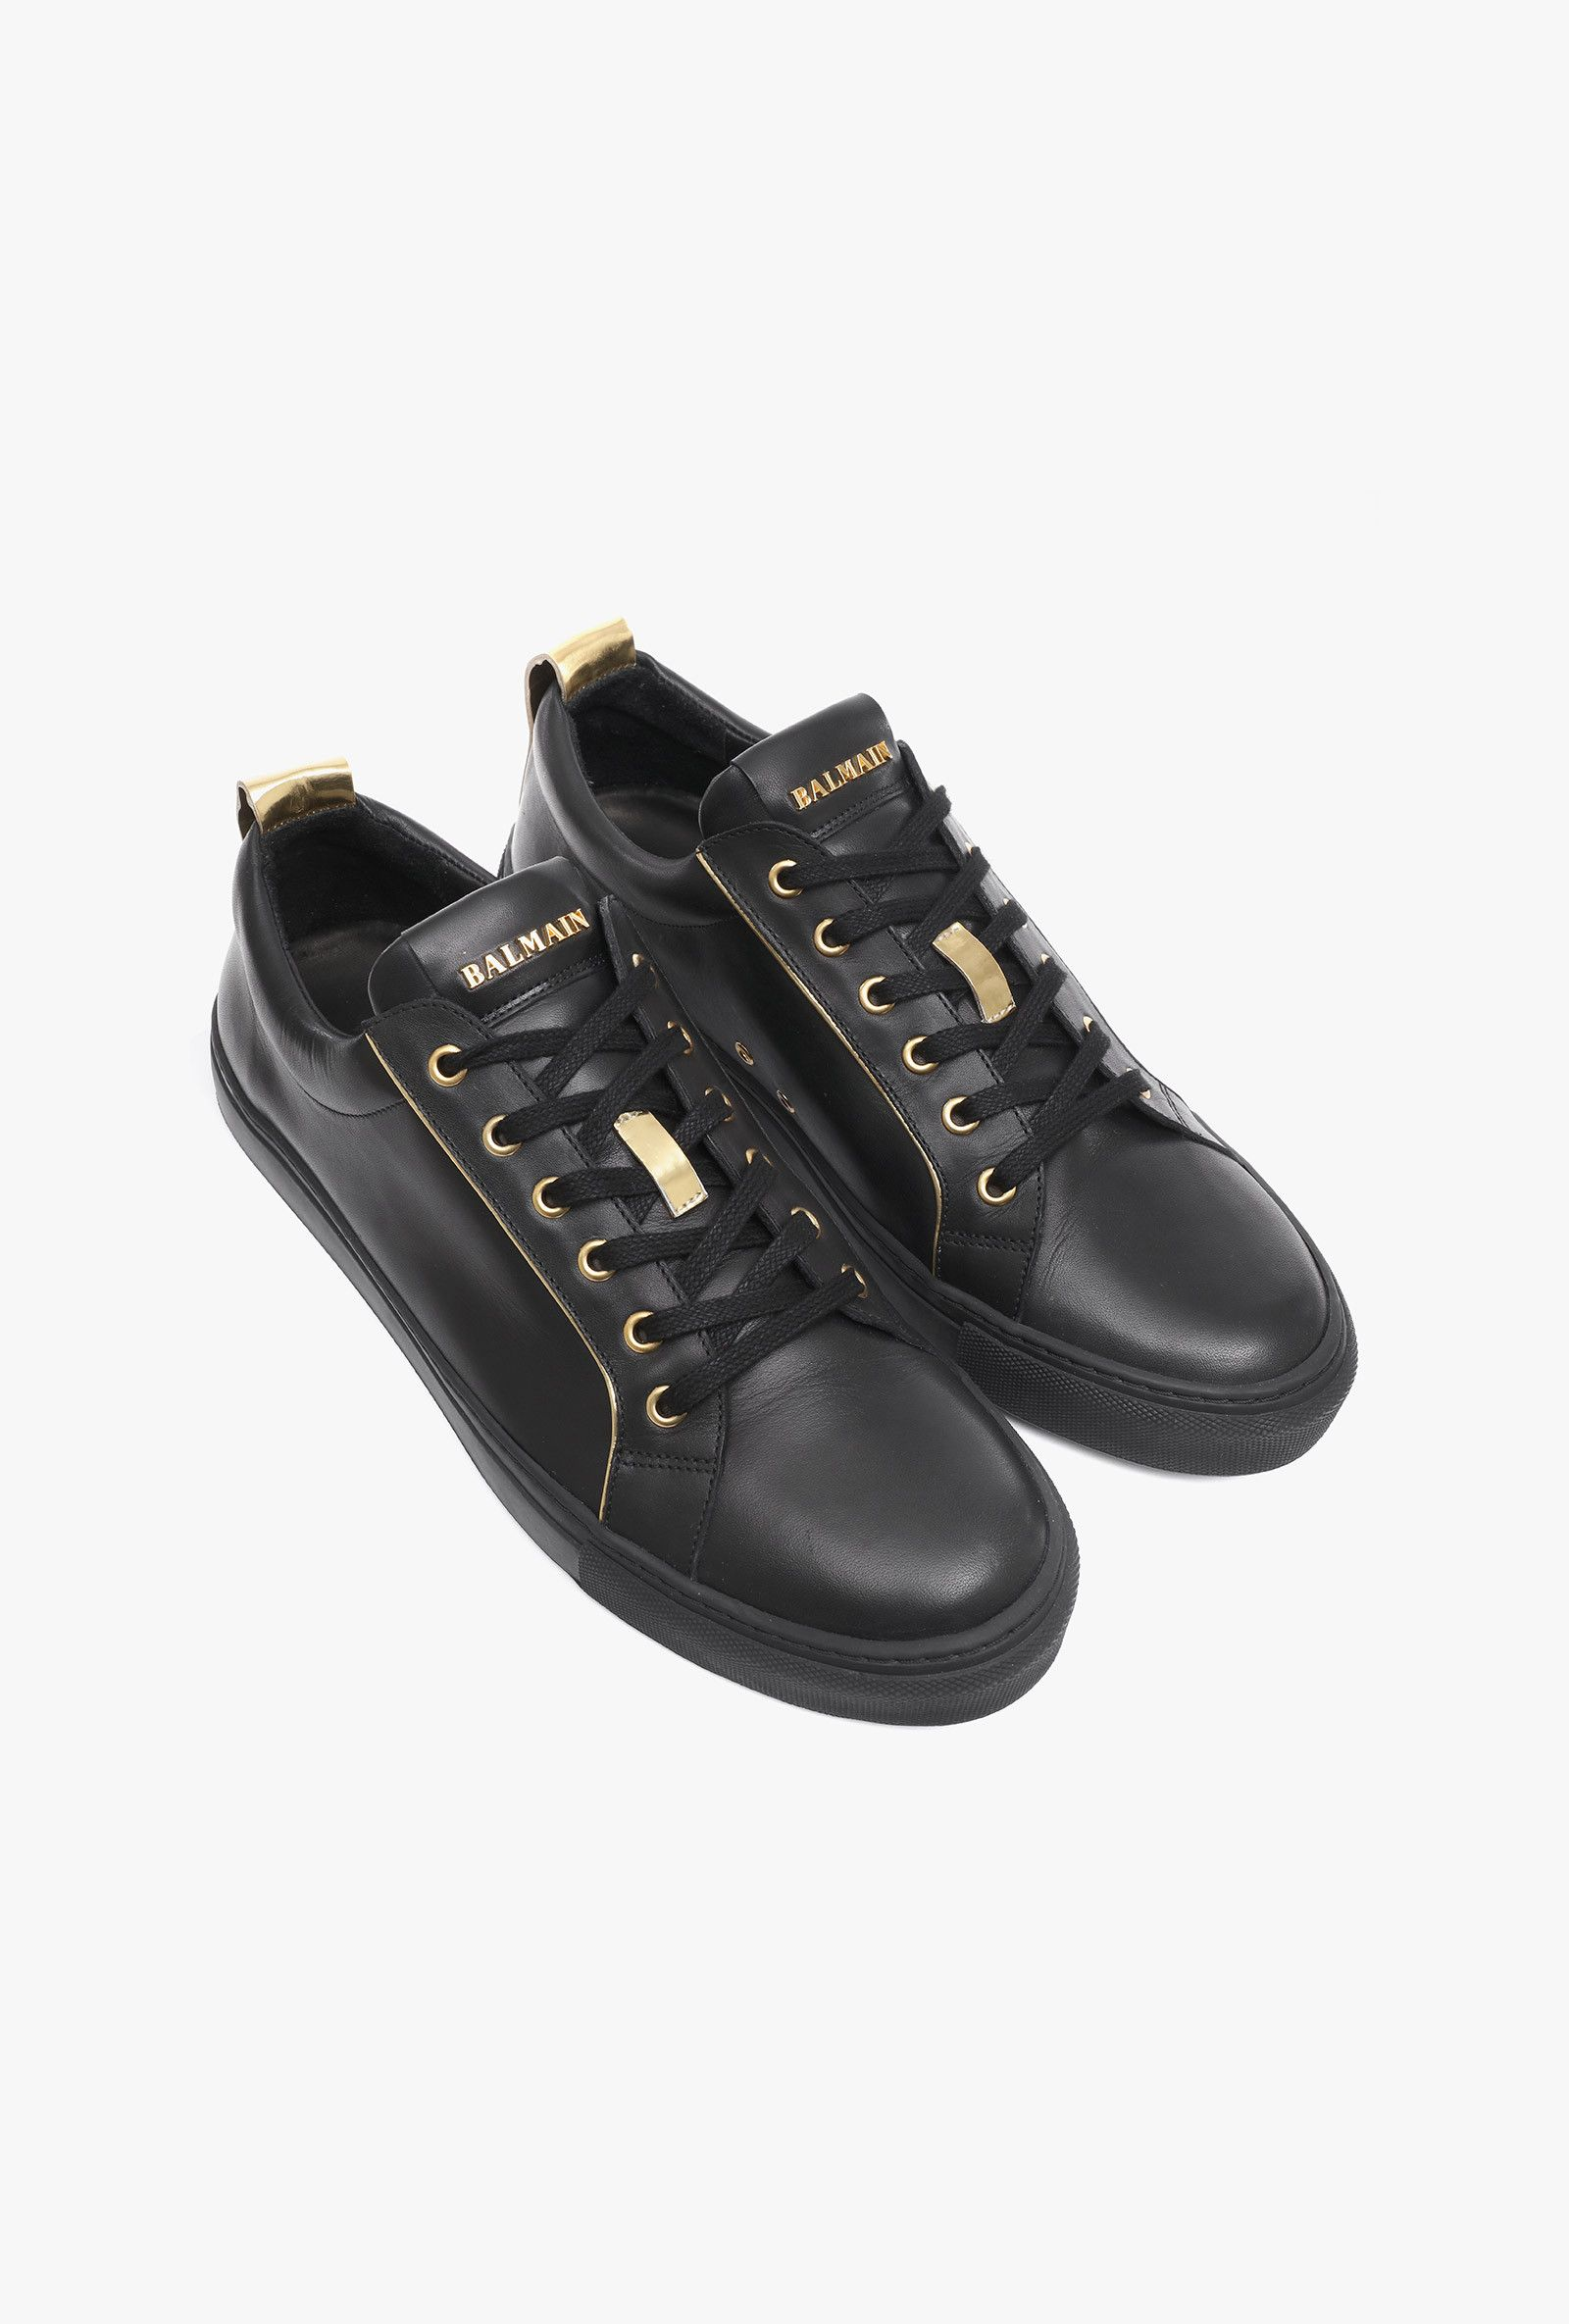 Leather Sneakers With Gold Tone Piping Mens Shoes Balmain